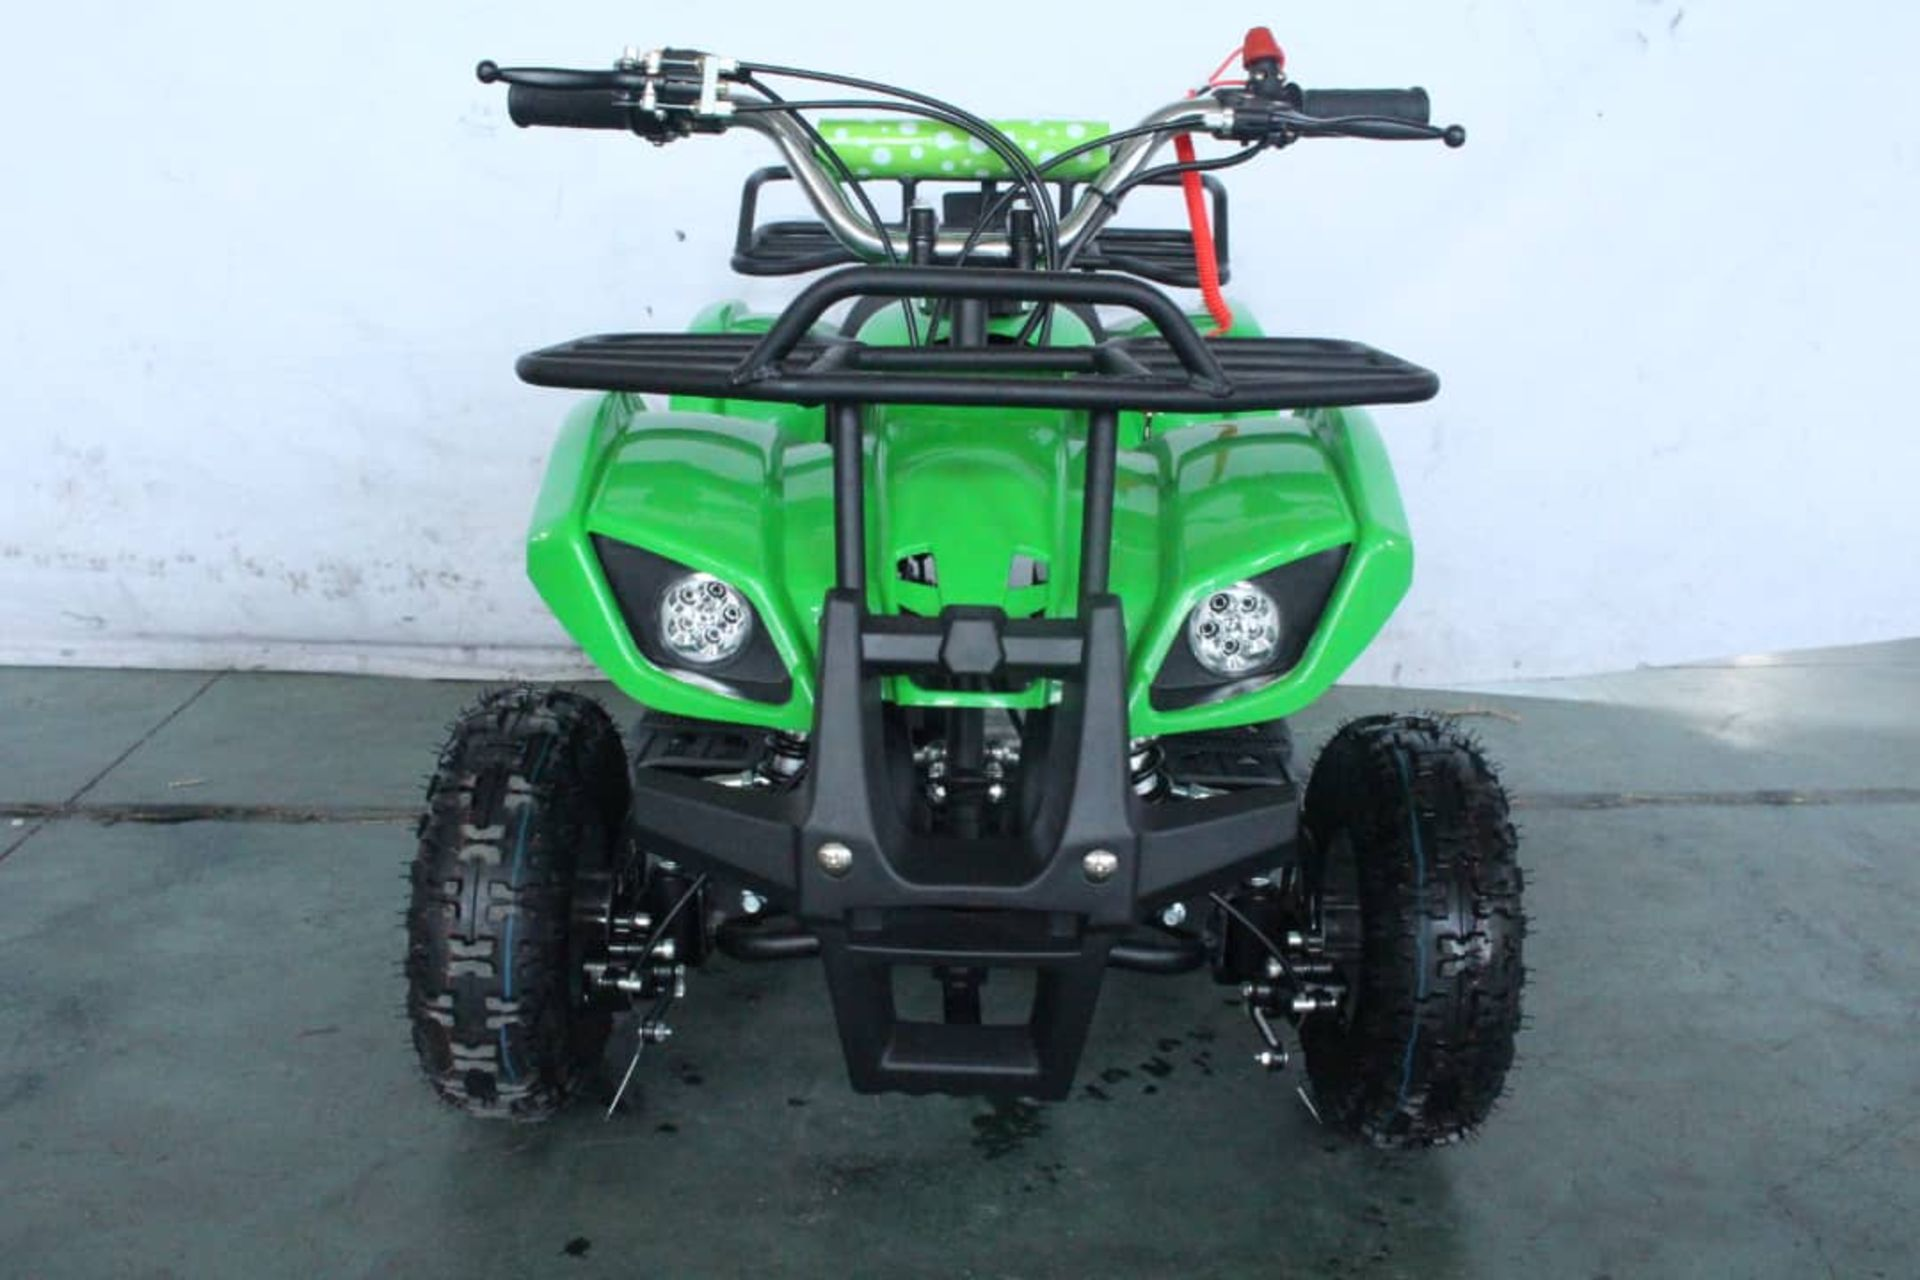 + VAT Brand New 49cc Hawk Mini Quad Bike - Colours May Vary - Full Front And Rear Suspension - Disk - Image 9 of 9